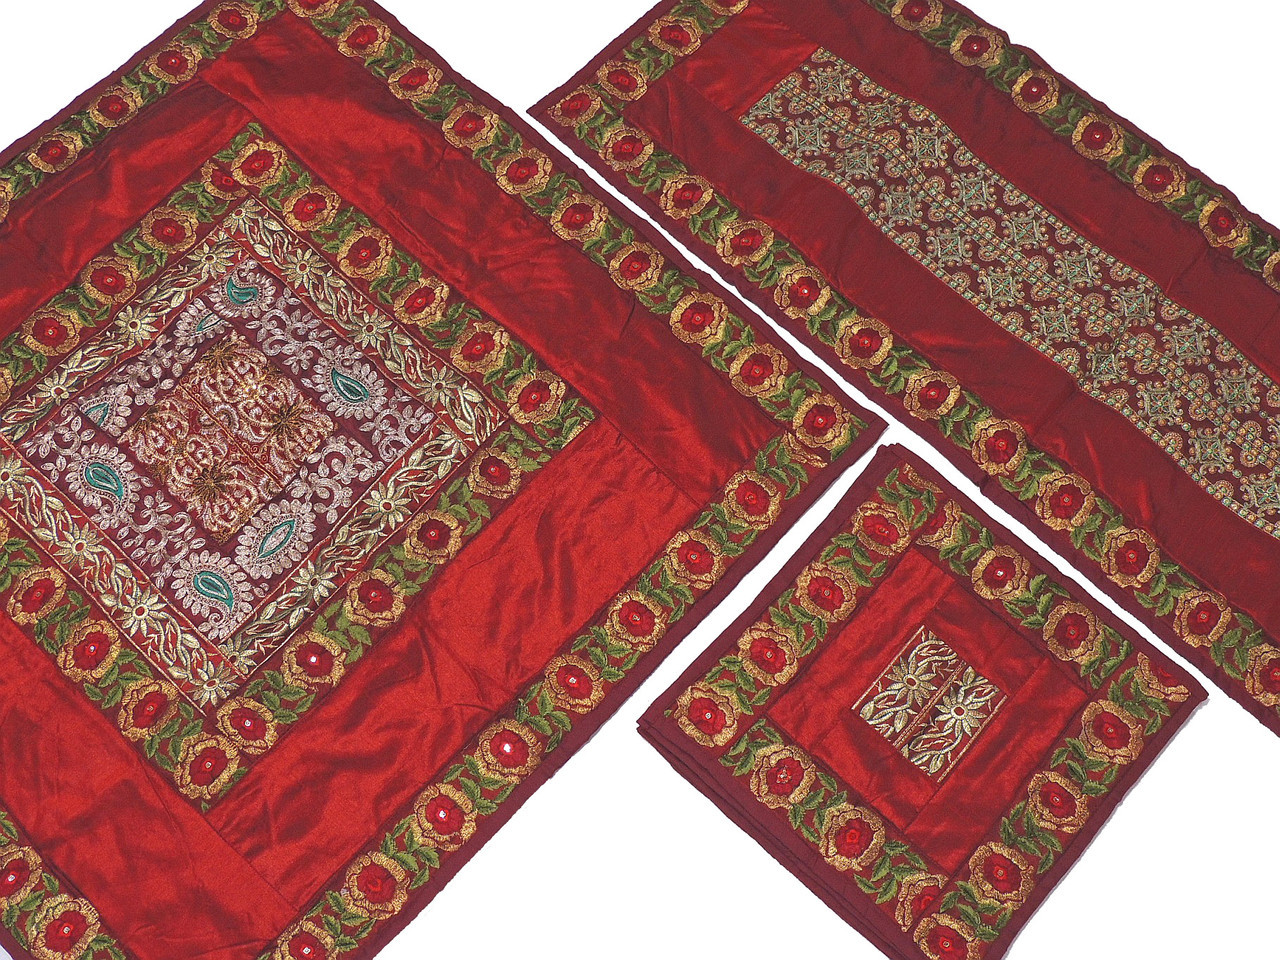 Charmant Burgundy Pretty Table Linens Set   Indian Embroidered Tablecloth Runner 4  Placemats.